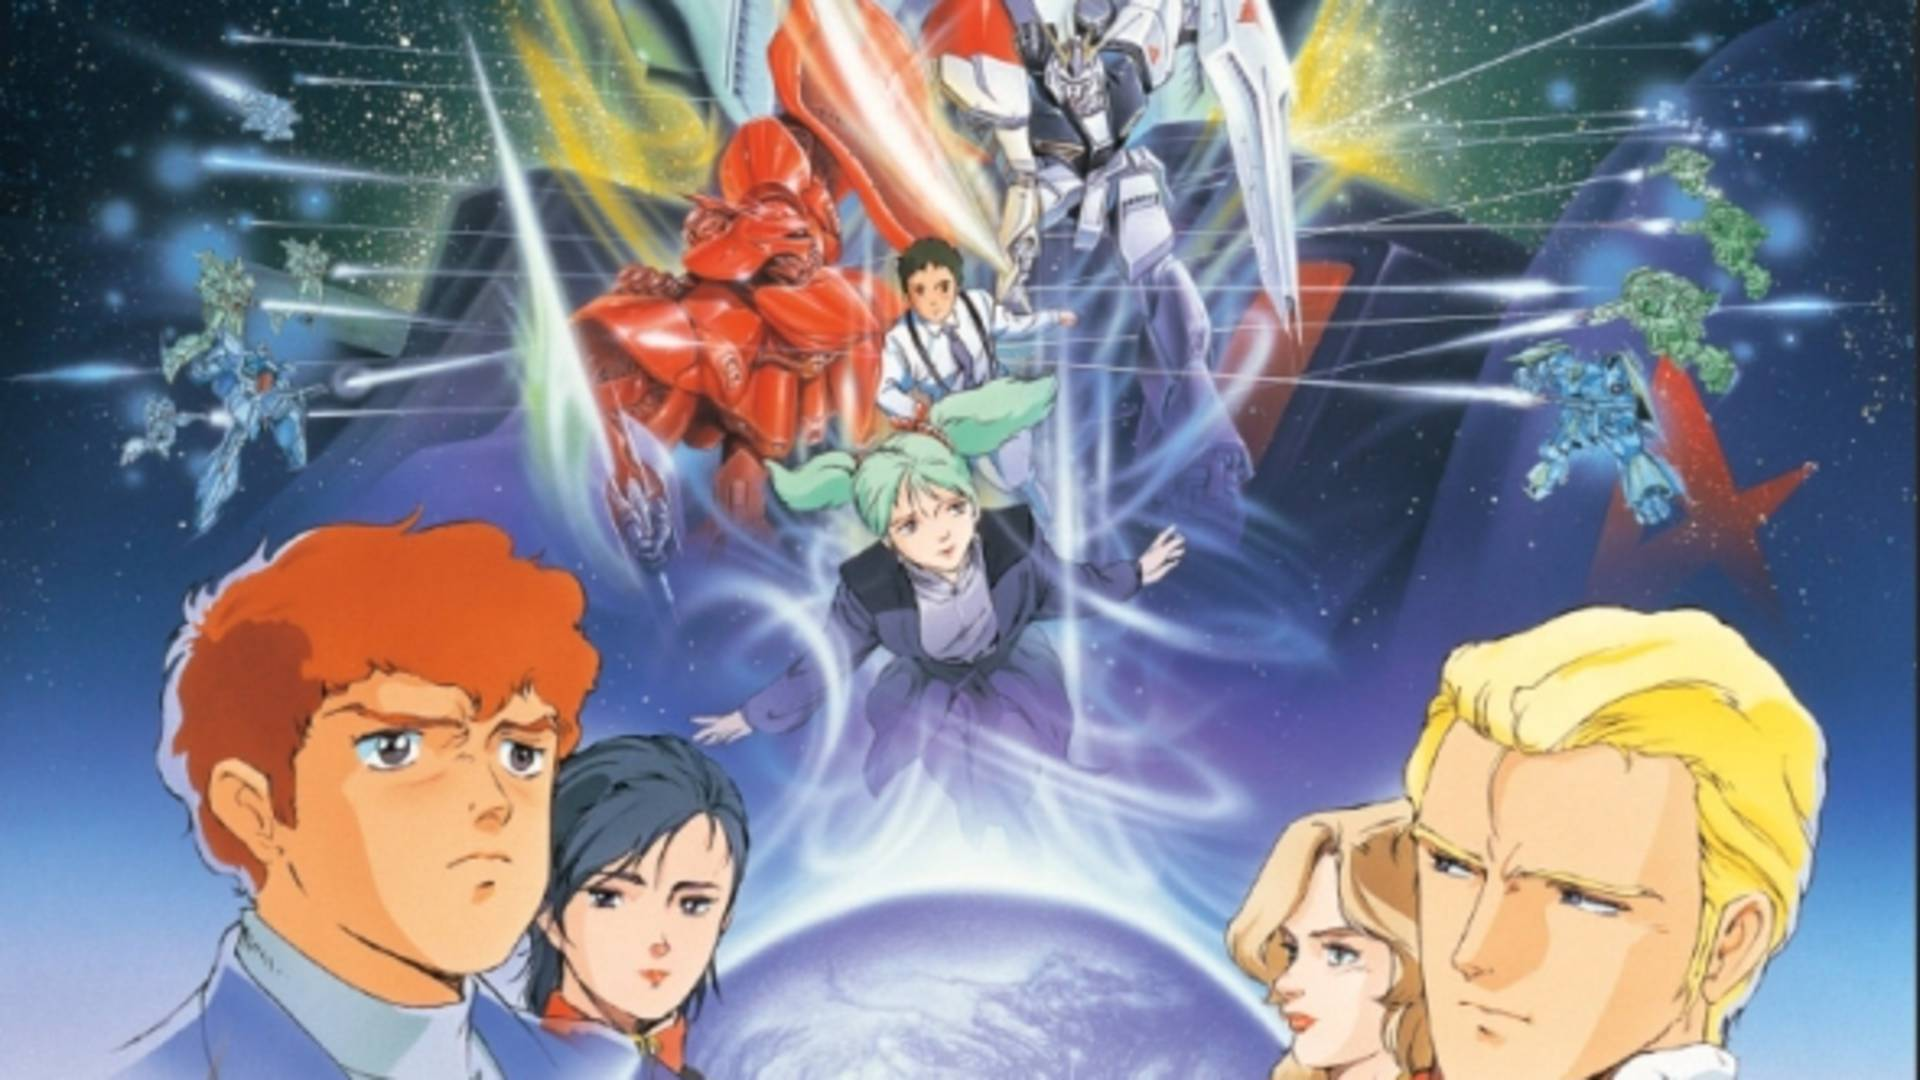 Mobile Suit Gundam Char S Counterattack Gundam F91 Ghost In The Shell To Receive 4k Uhd Remasters